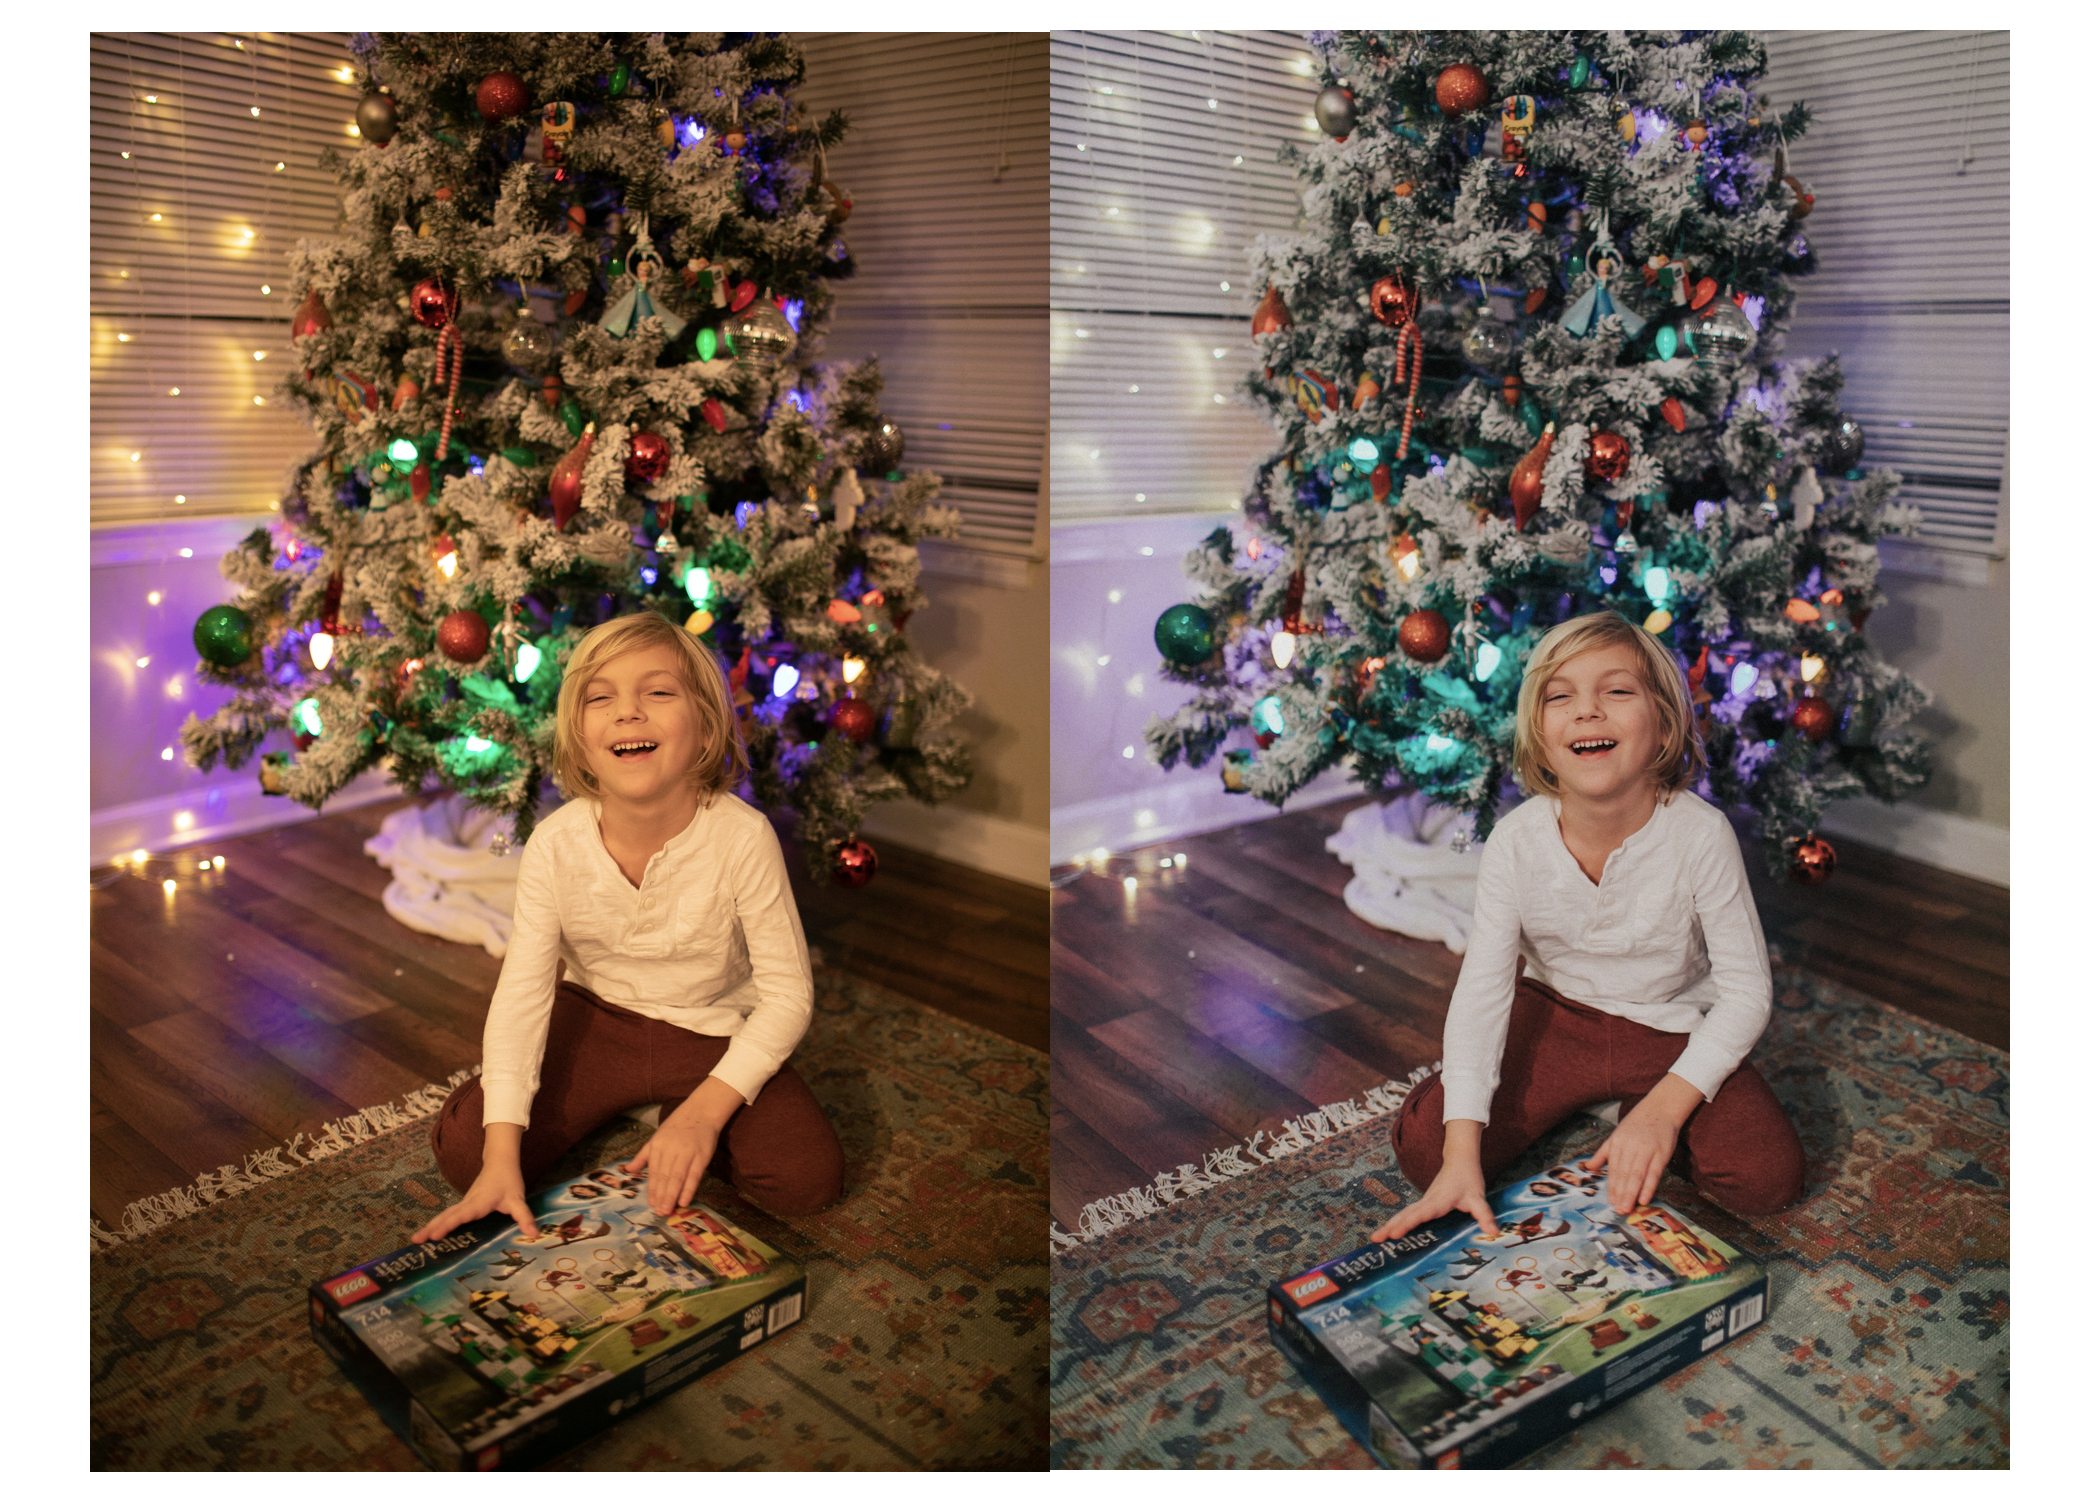 Canon 5dMk4. Shot with 35mm lens on 1.6, 160 shutter, 640 ISO. LEFT: SOOC. RIGHT: EDITED WITH MEGA